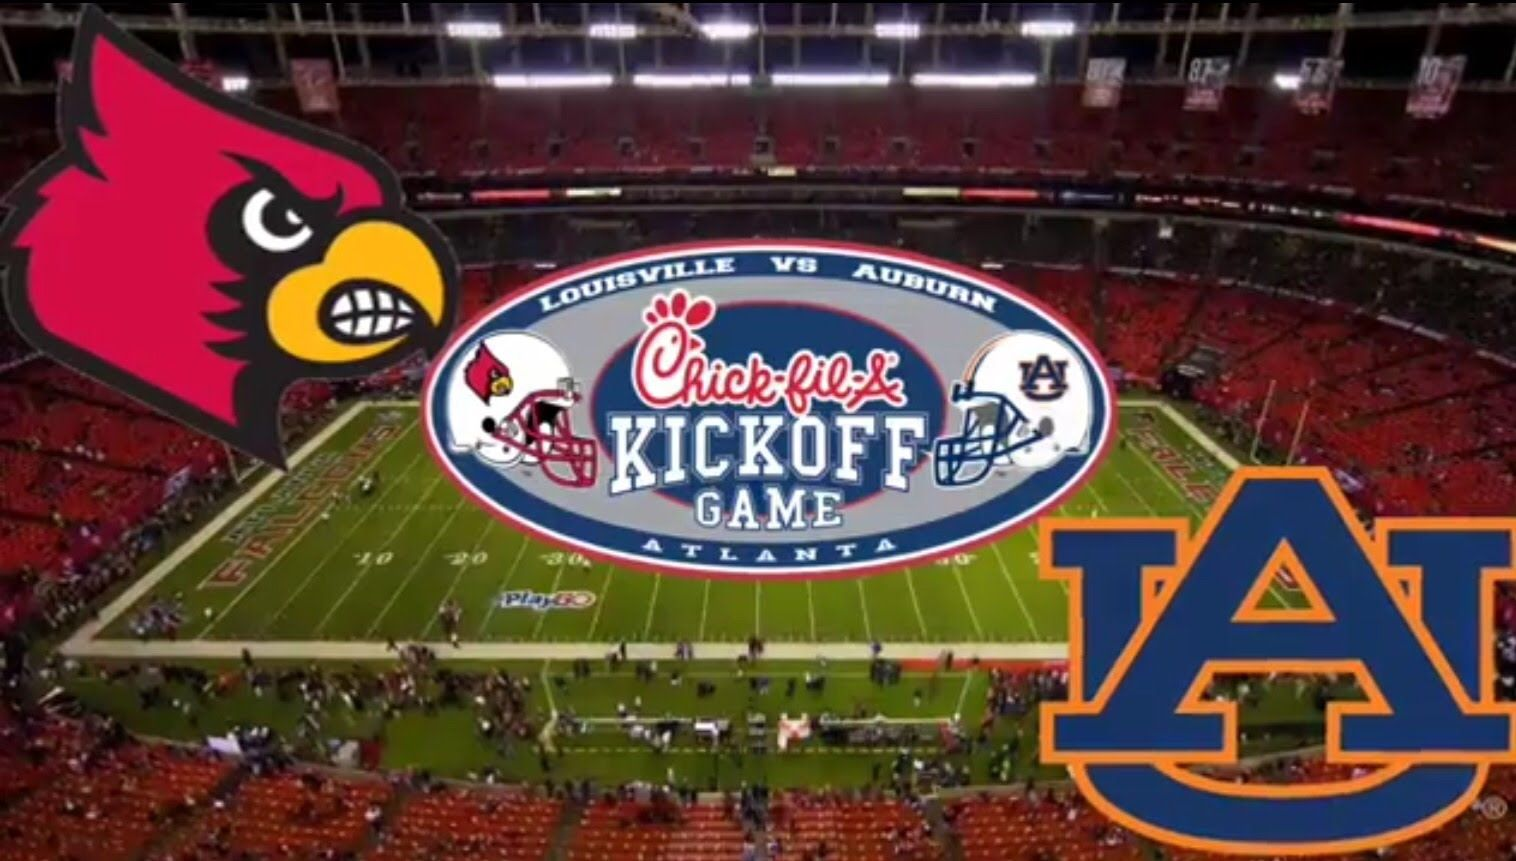 Auburn vs Louisville 20152016 Intro. (With images